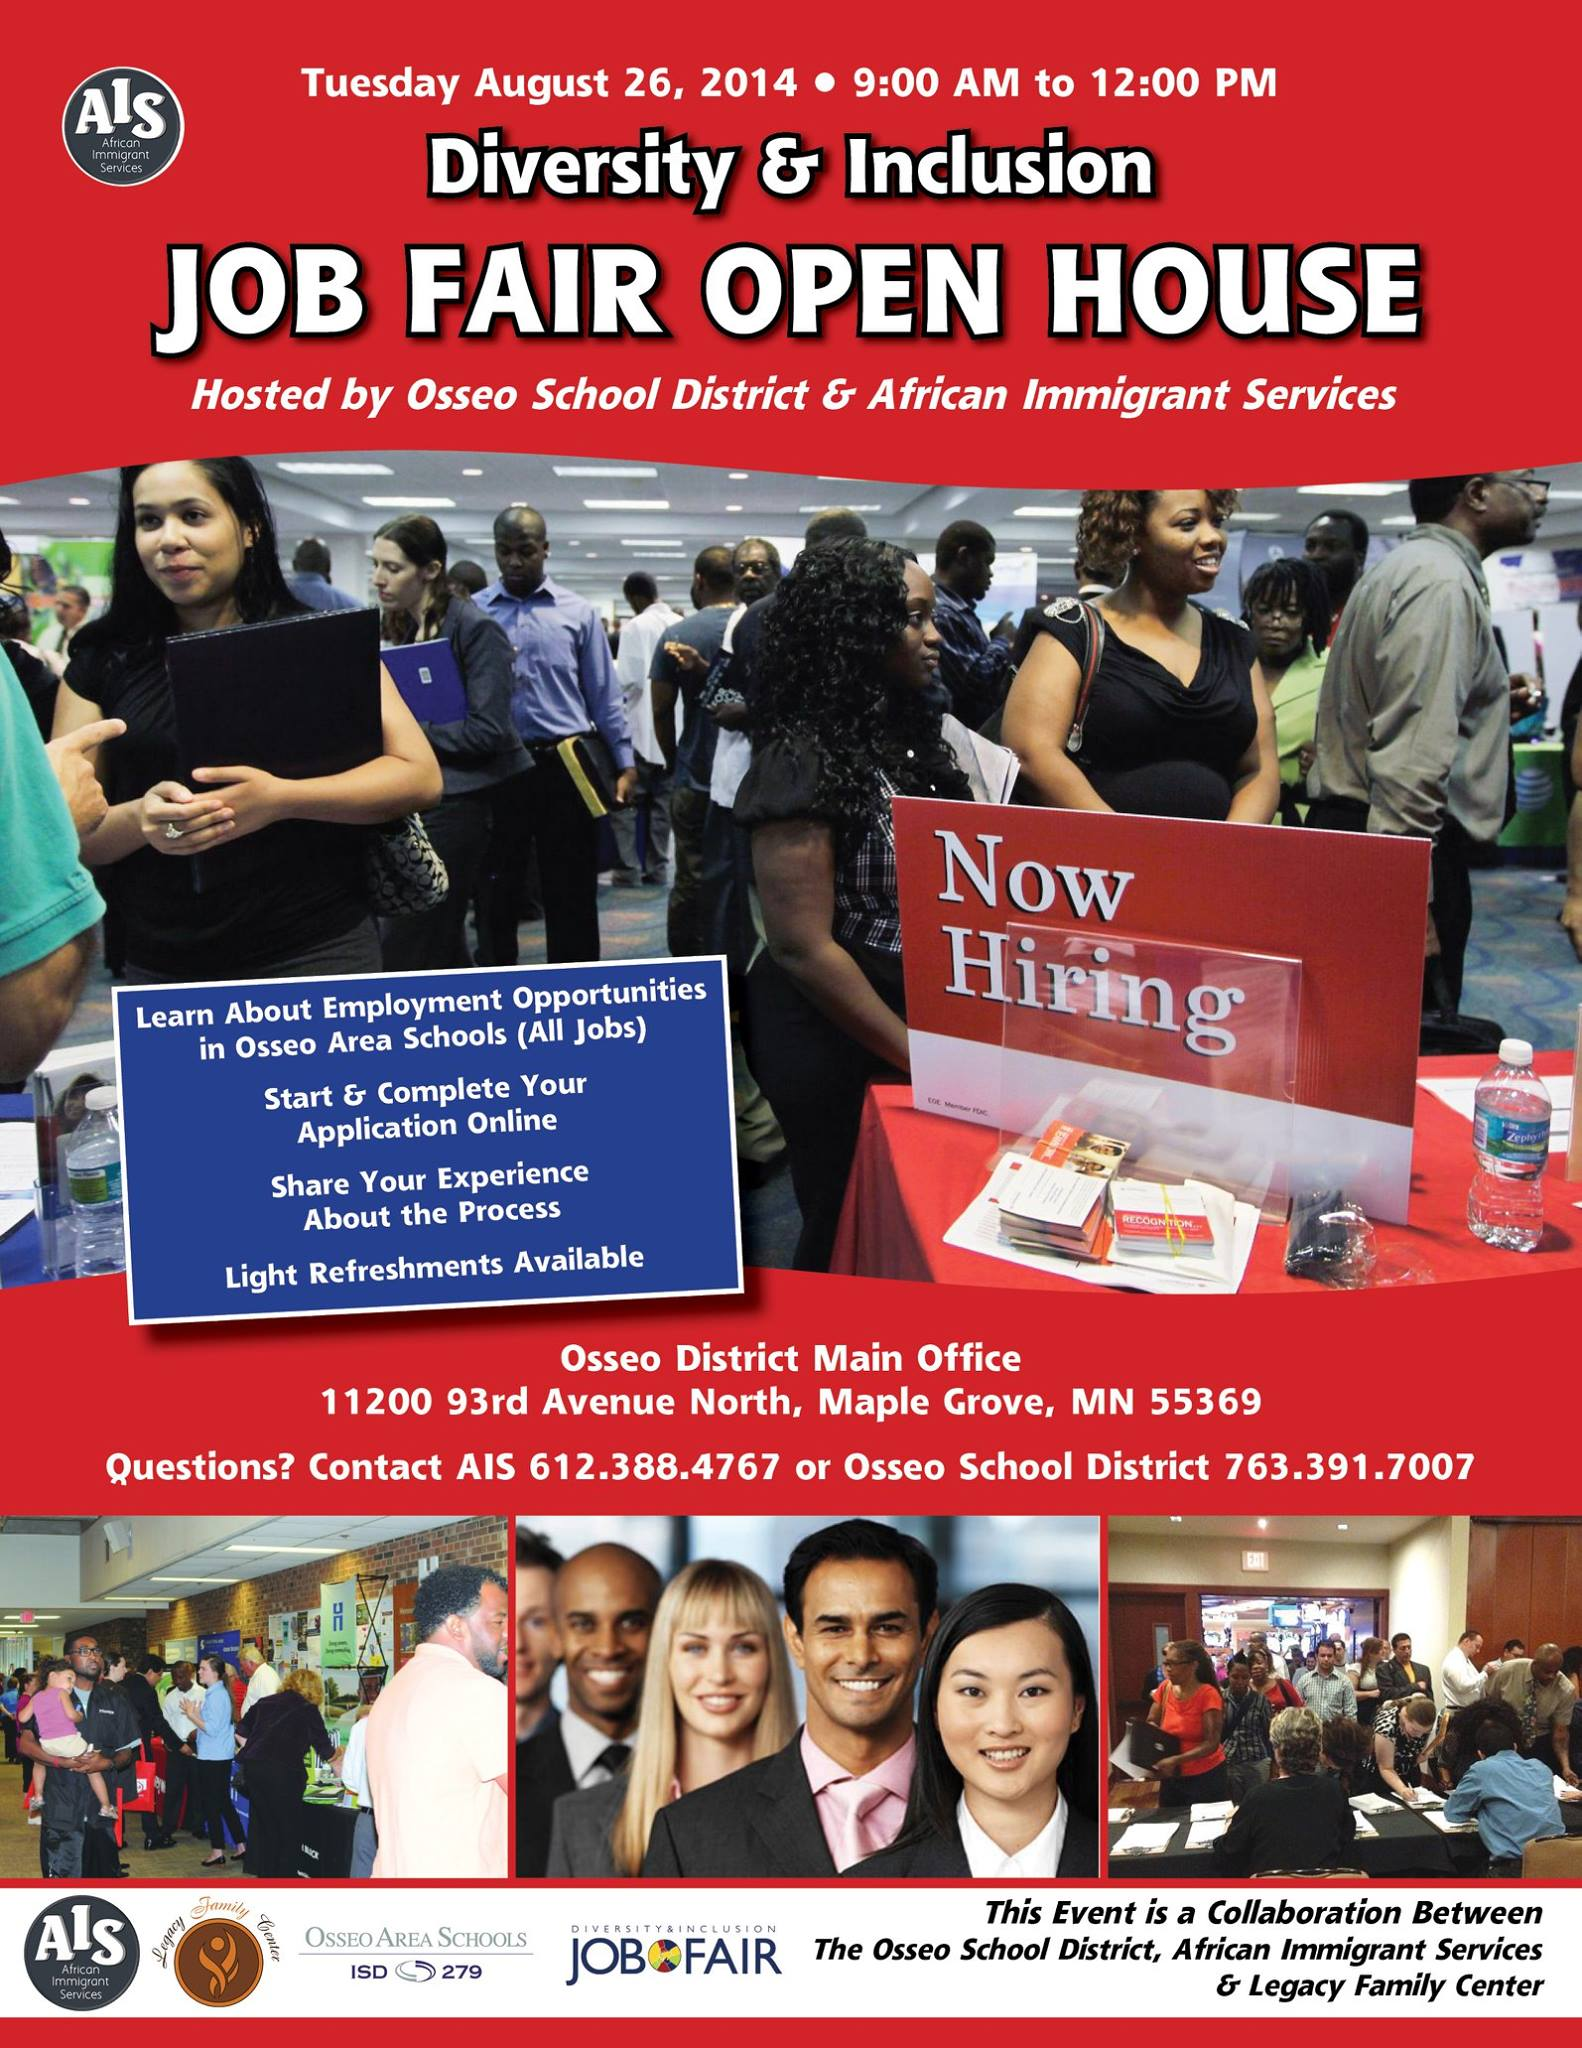 Diversity & Inclusion Job Day Open House